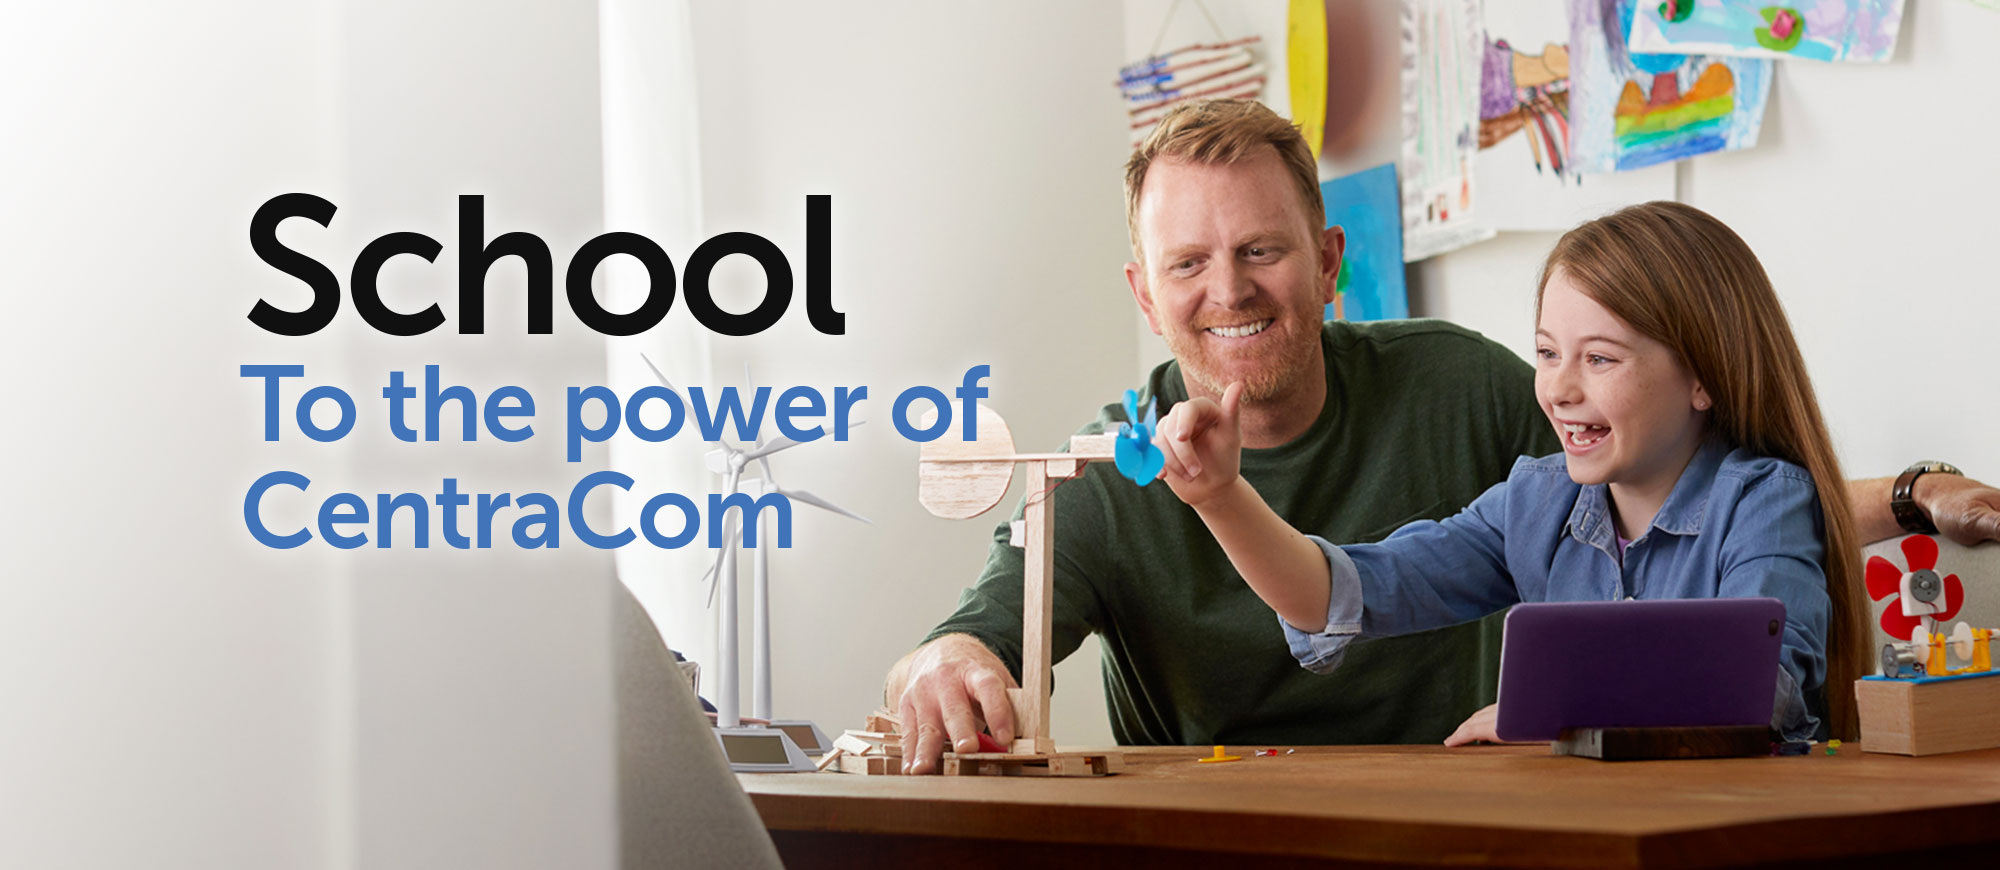 School to the Power of CentraCom